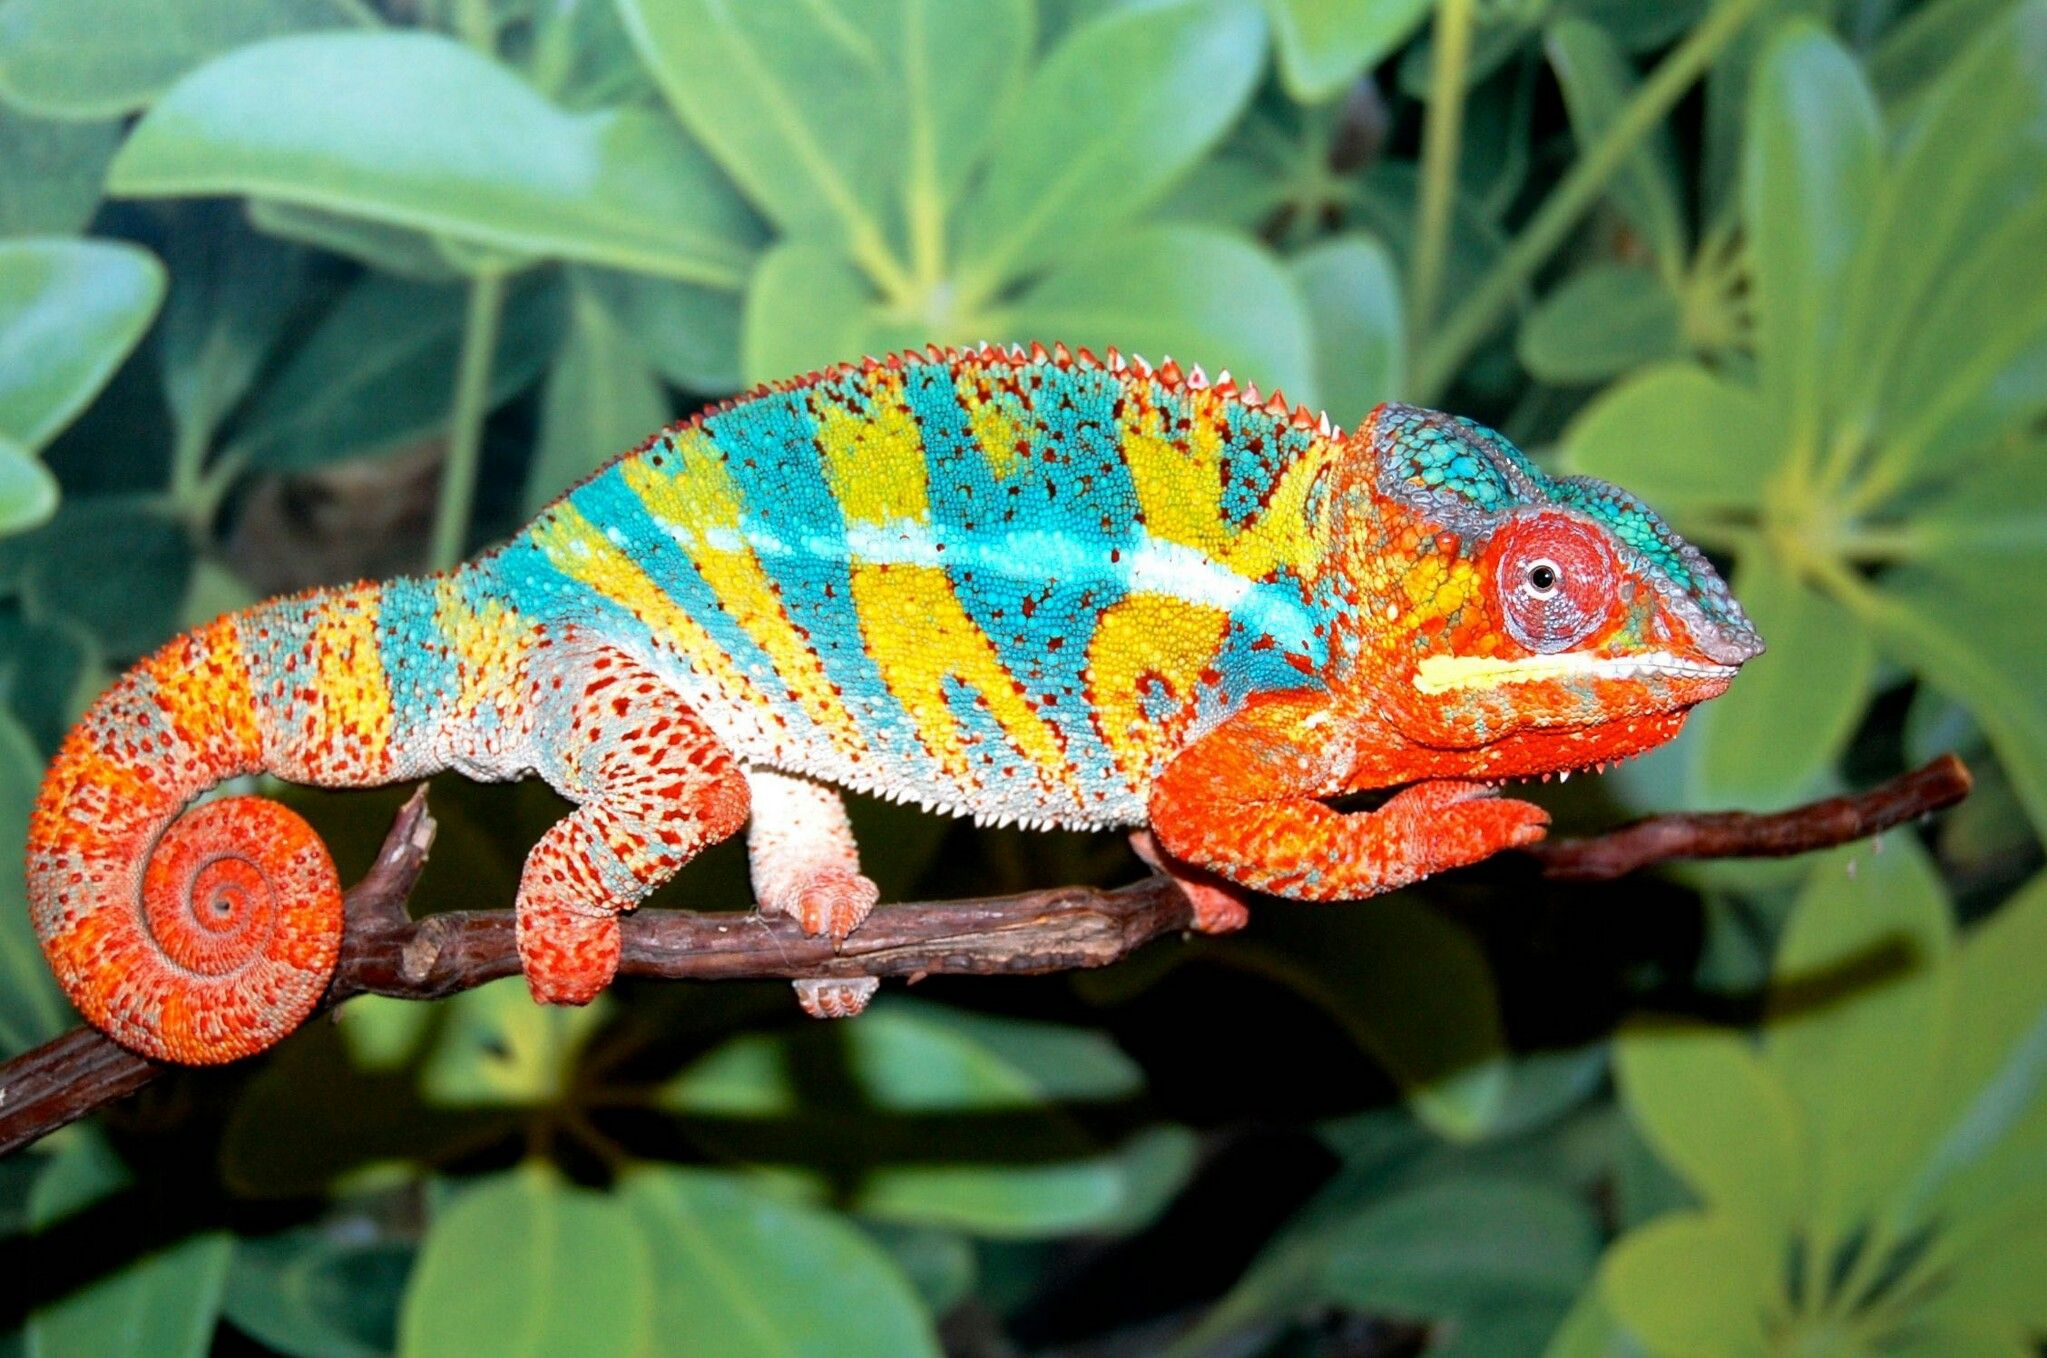 Pin by Betty on Meaning/Morphology Chameleons for